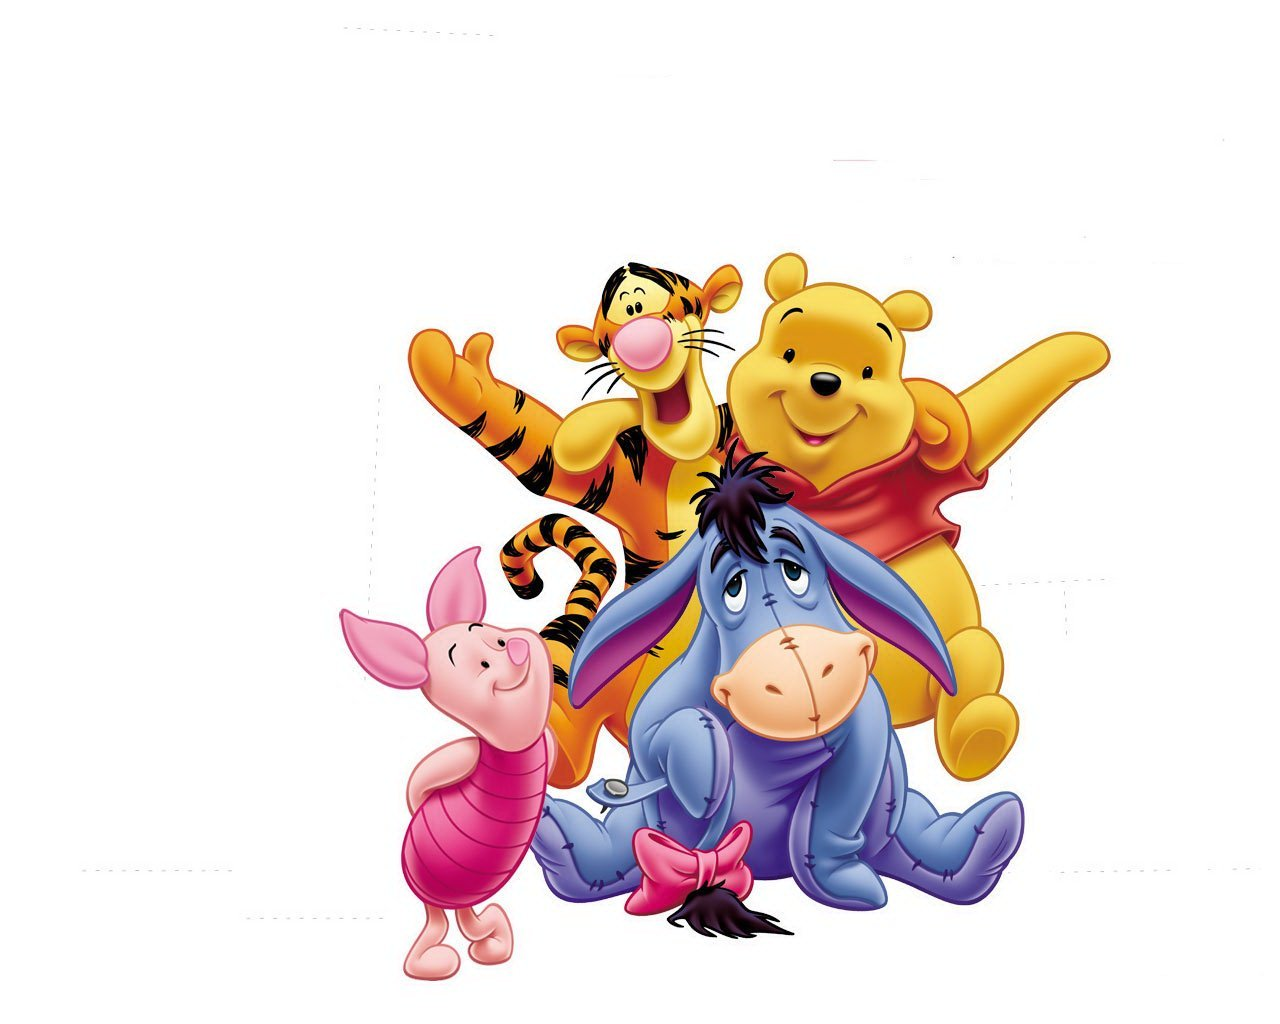 Imagenes de Winnie Pooh